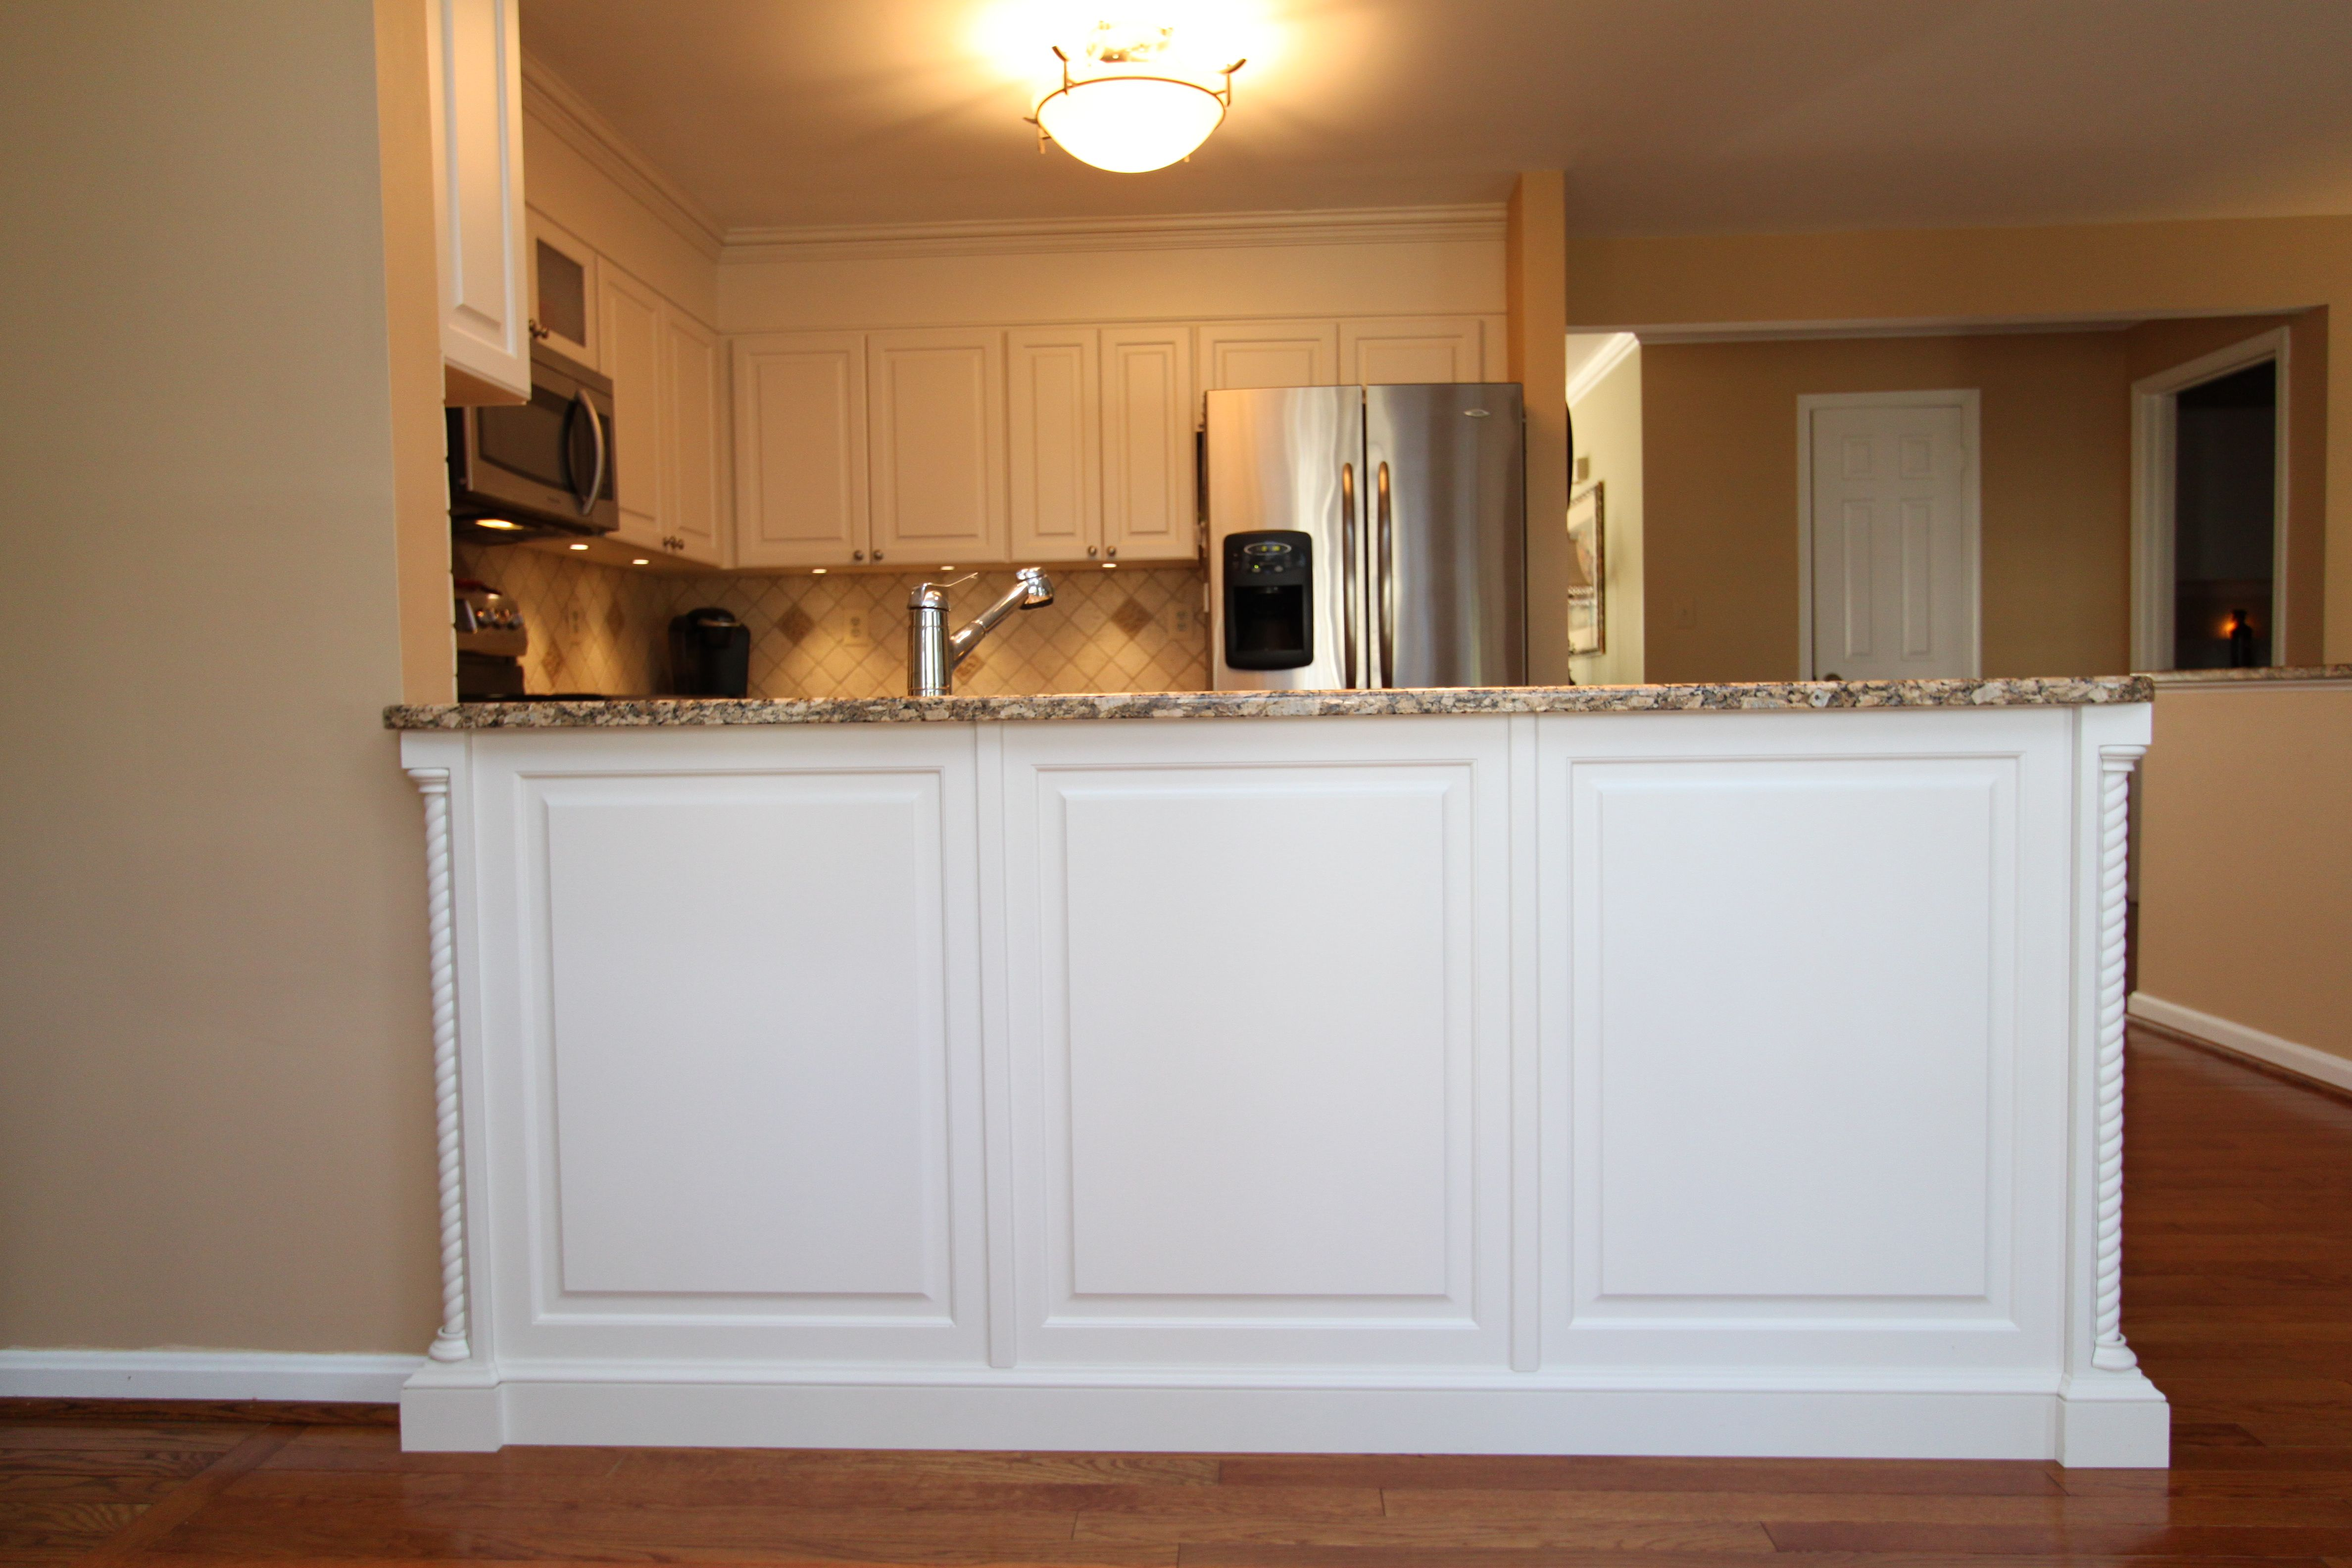 Transitional Style White Kitchen With Granite Countertops In Ellicott City Maryland The Decorative Rope Corner Posts On Peninsula Combine